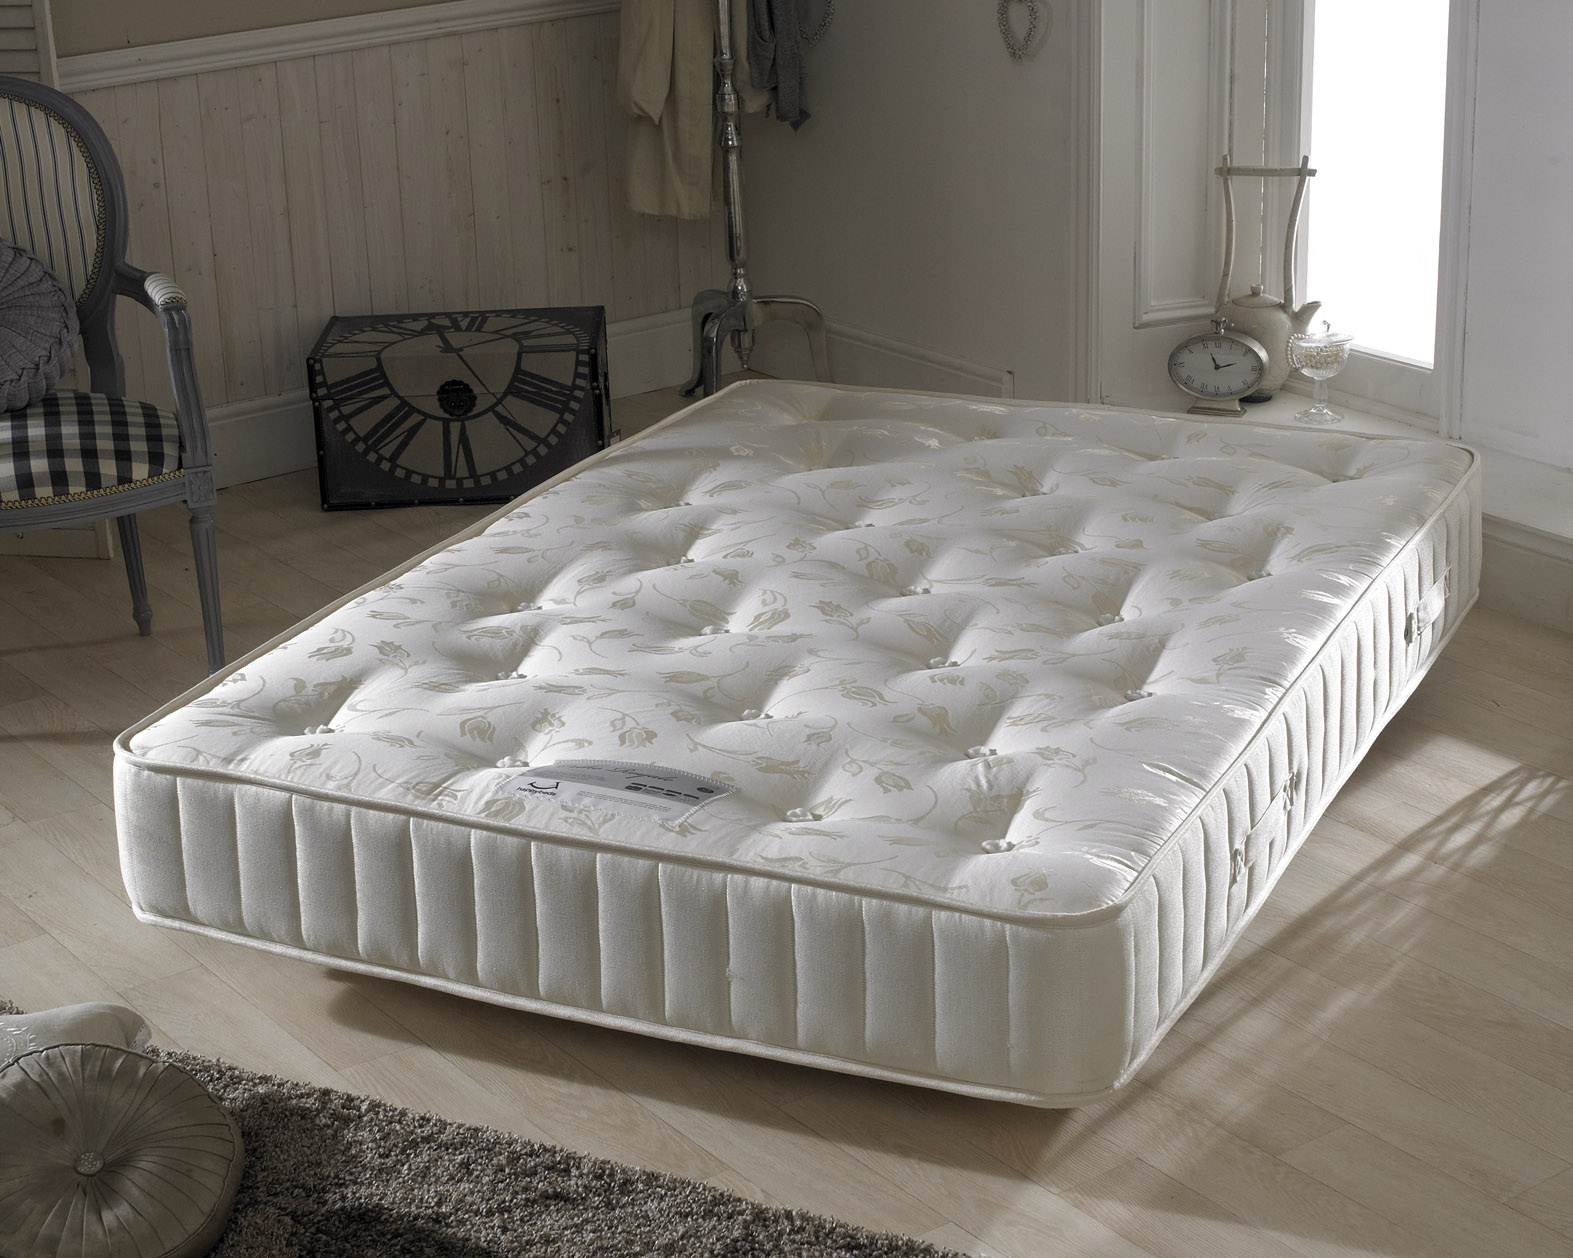 Happy Beds Ortho Royale Orthopaedic Mattress Handmade